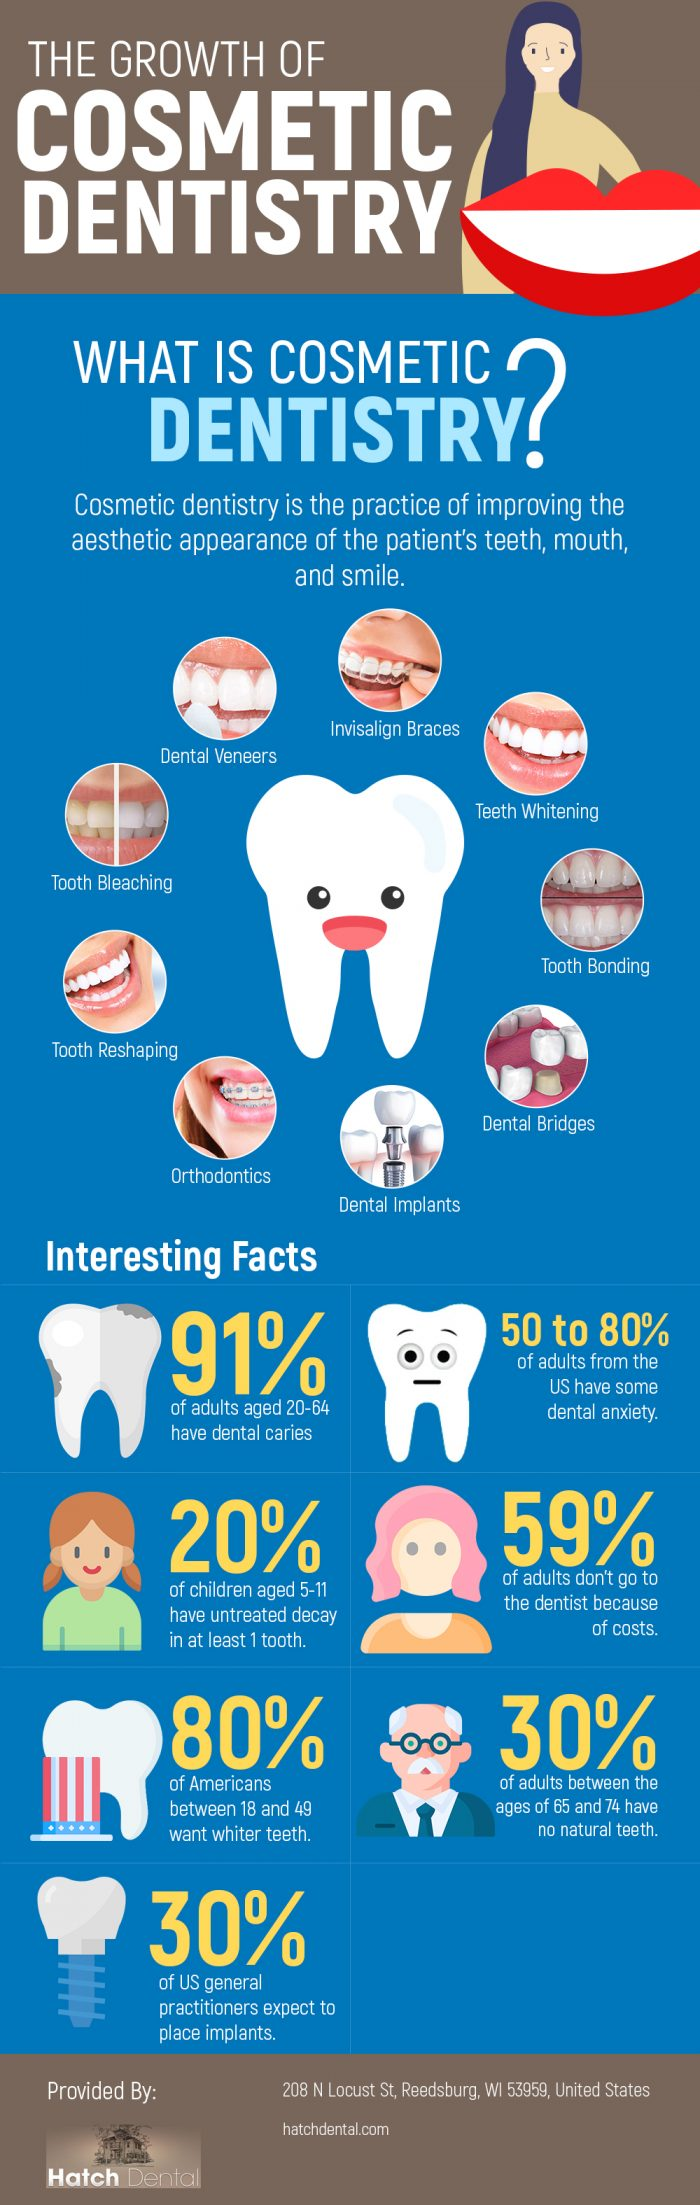 Restore Your Smile with Cosmetic Dentistry Procedures in Reedsburg, WI from Hatch Dental